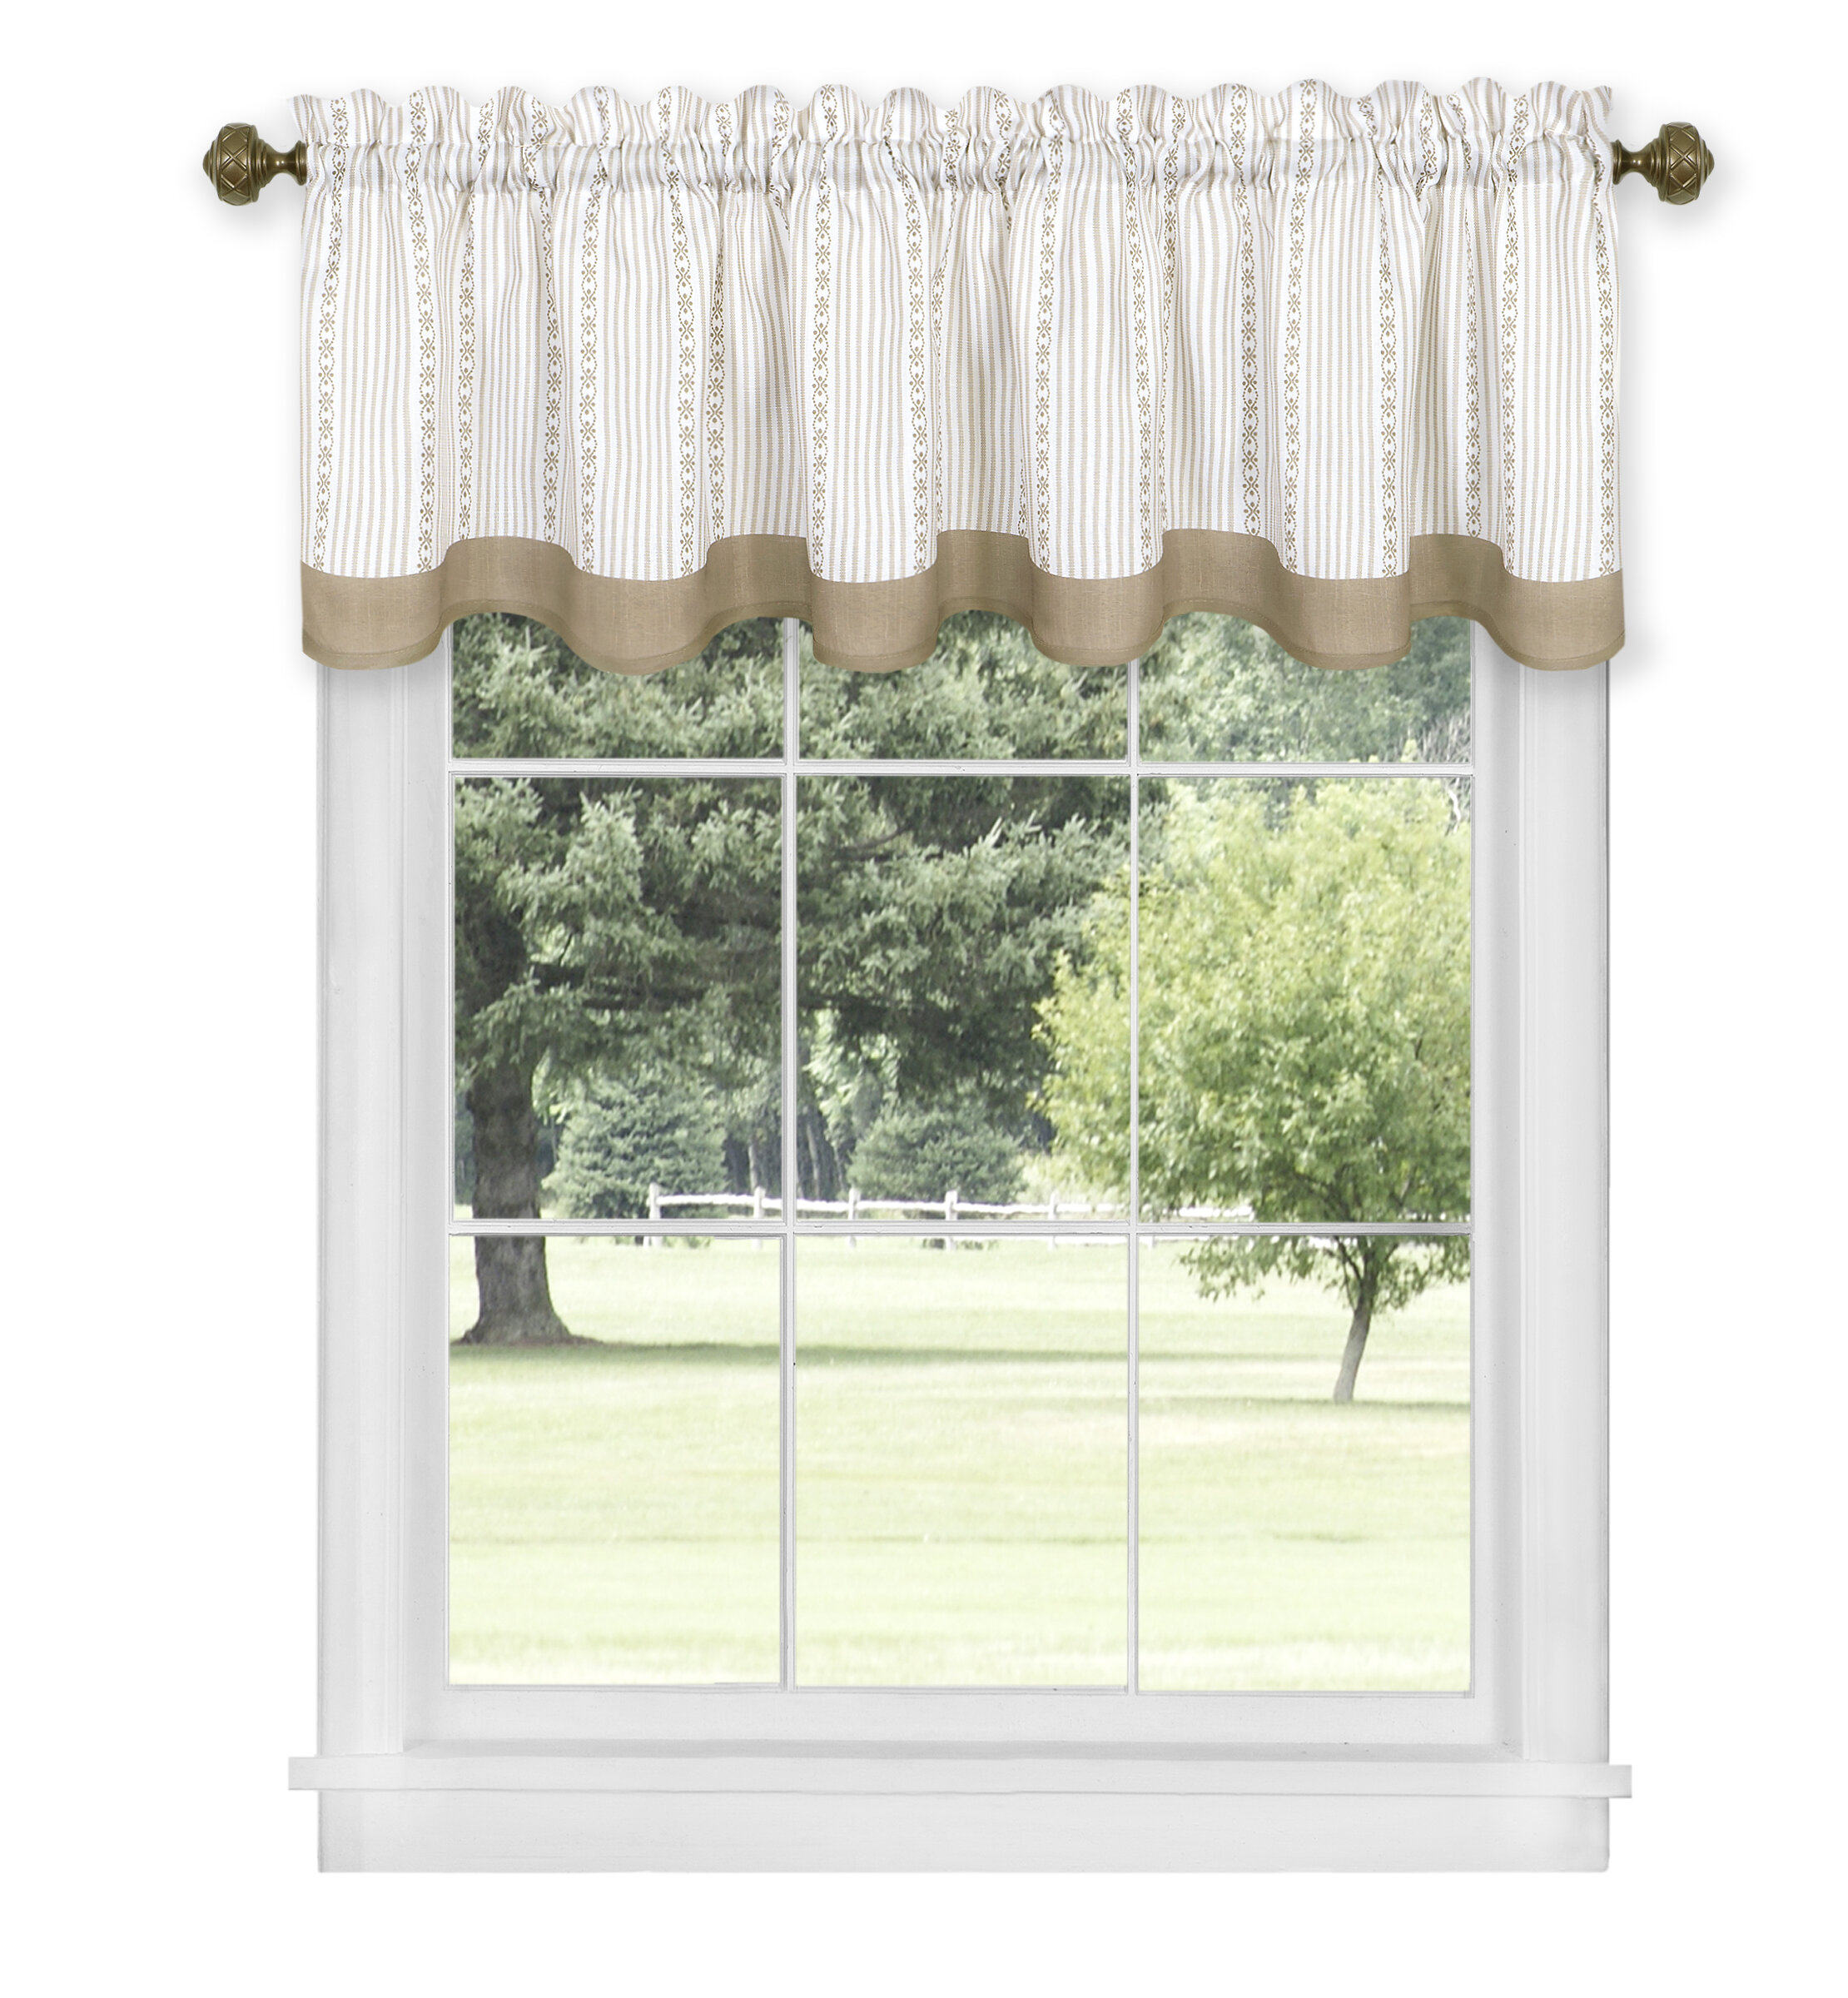 72 Inch Wide Valances Kitchen Curtains You Ll Love In 2021 Wayfair